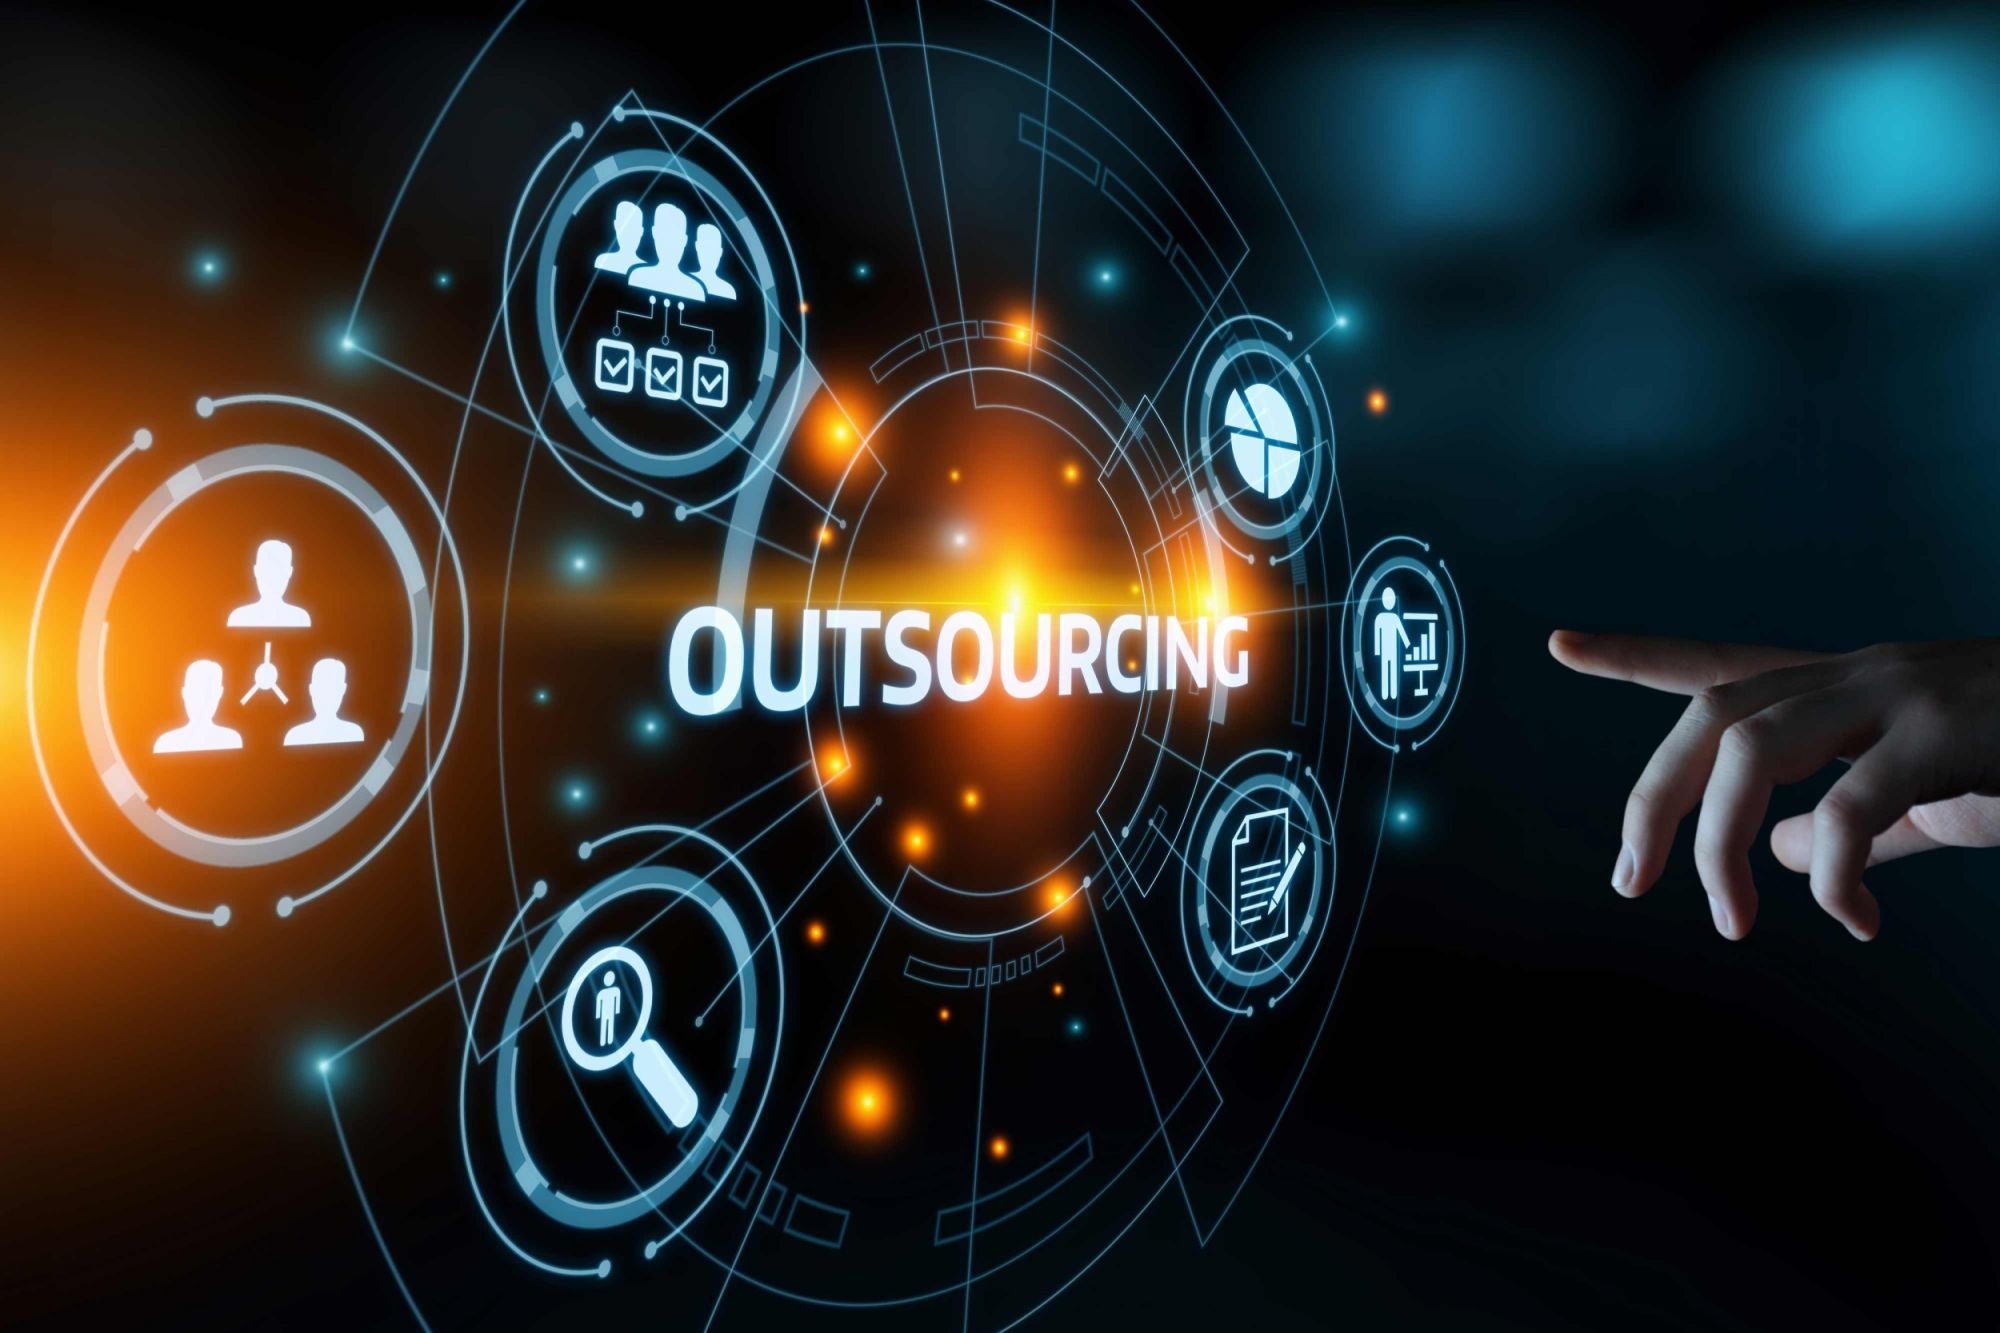 filemaker outsourcing